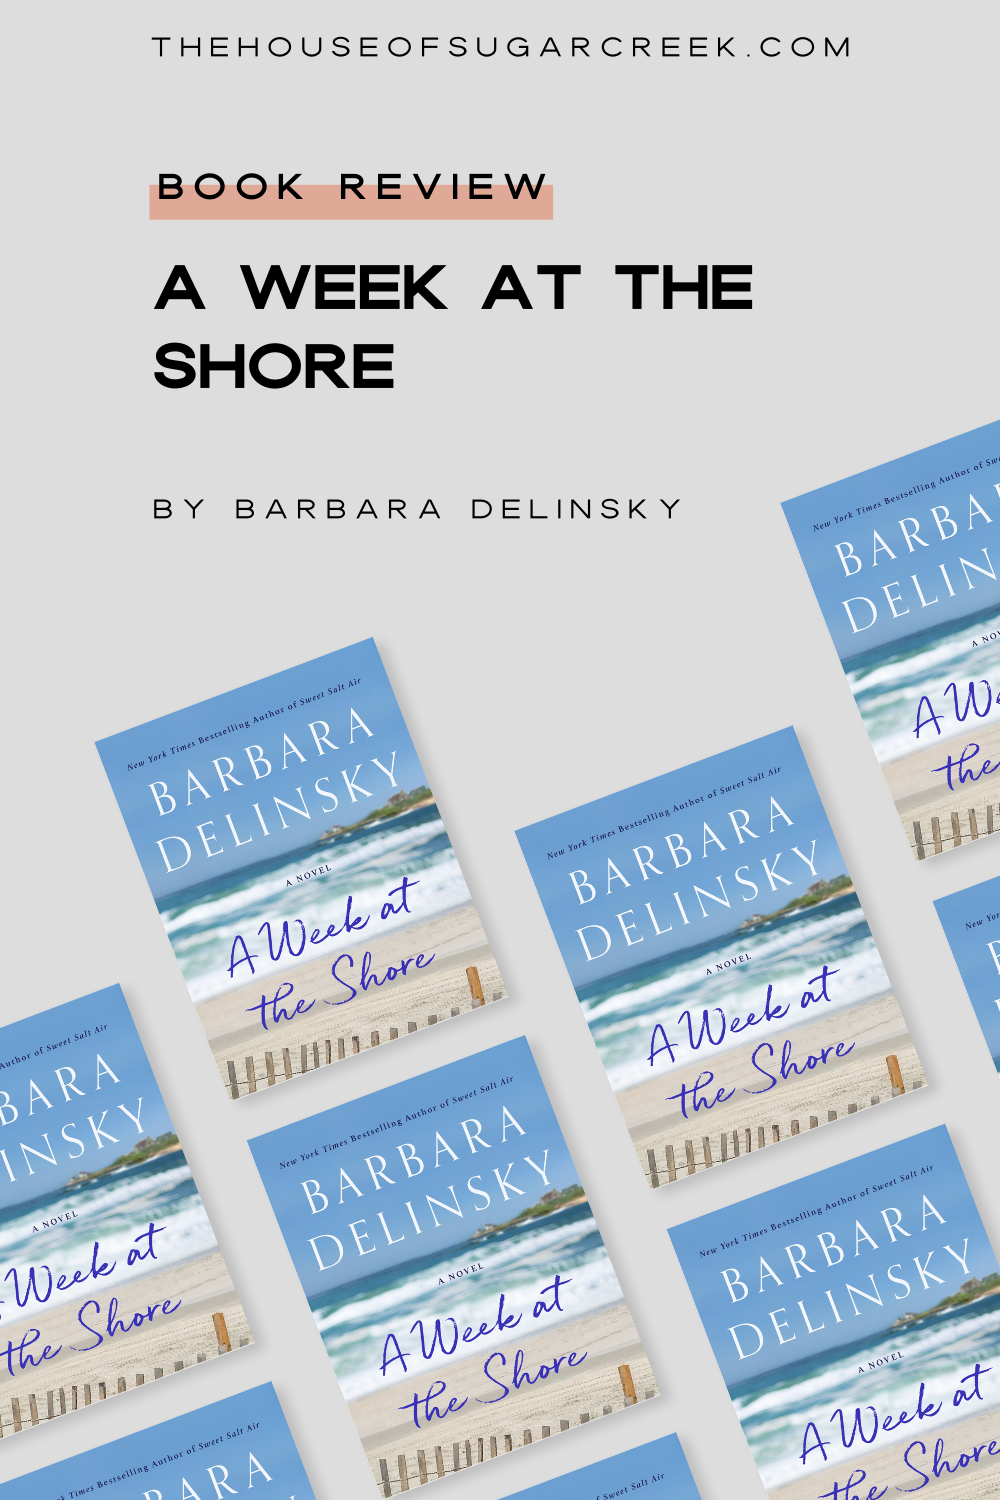 Book Review - A Week at the Shore by Barbara Delinsky